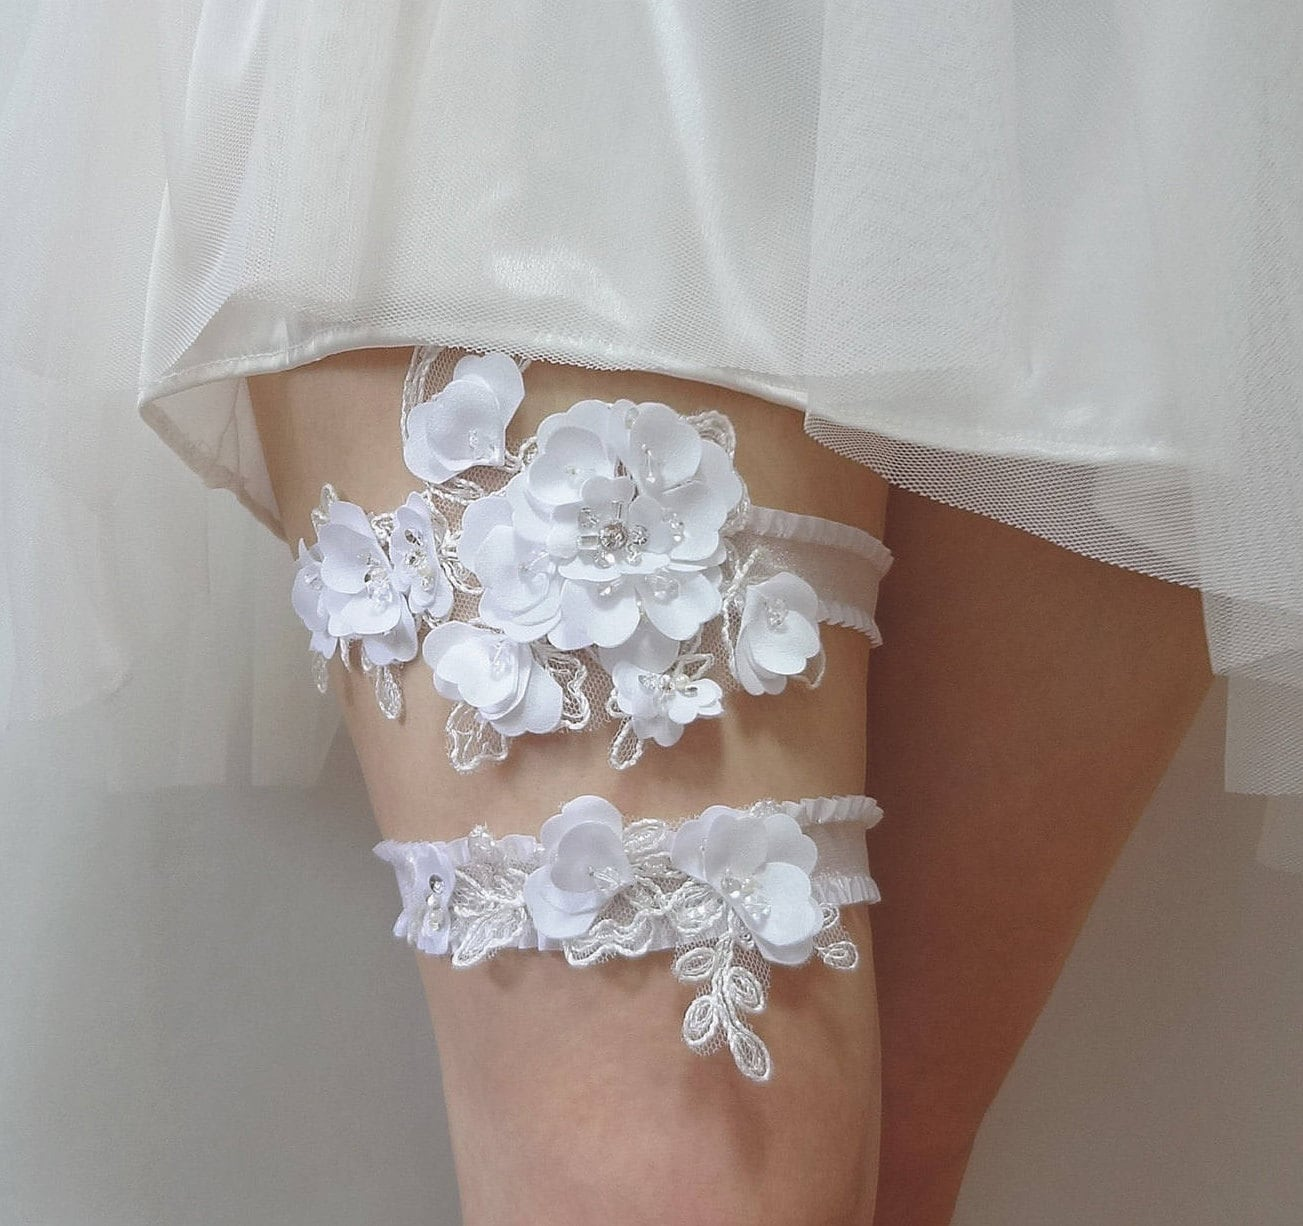 Lace Wedding Garters: White Satin Lace Garter Set Bridal Garter Set Wedding